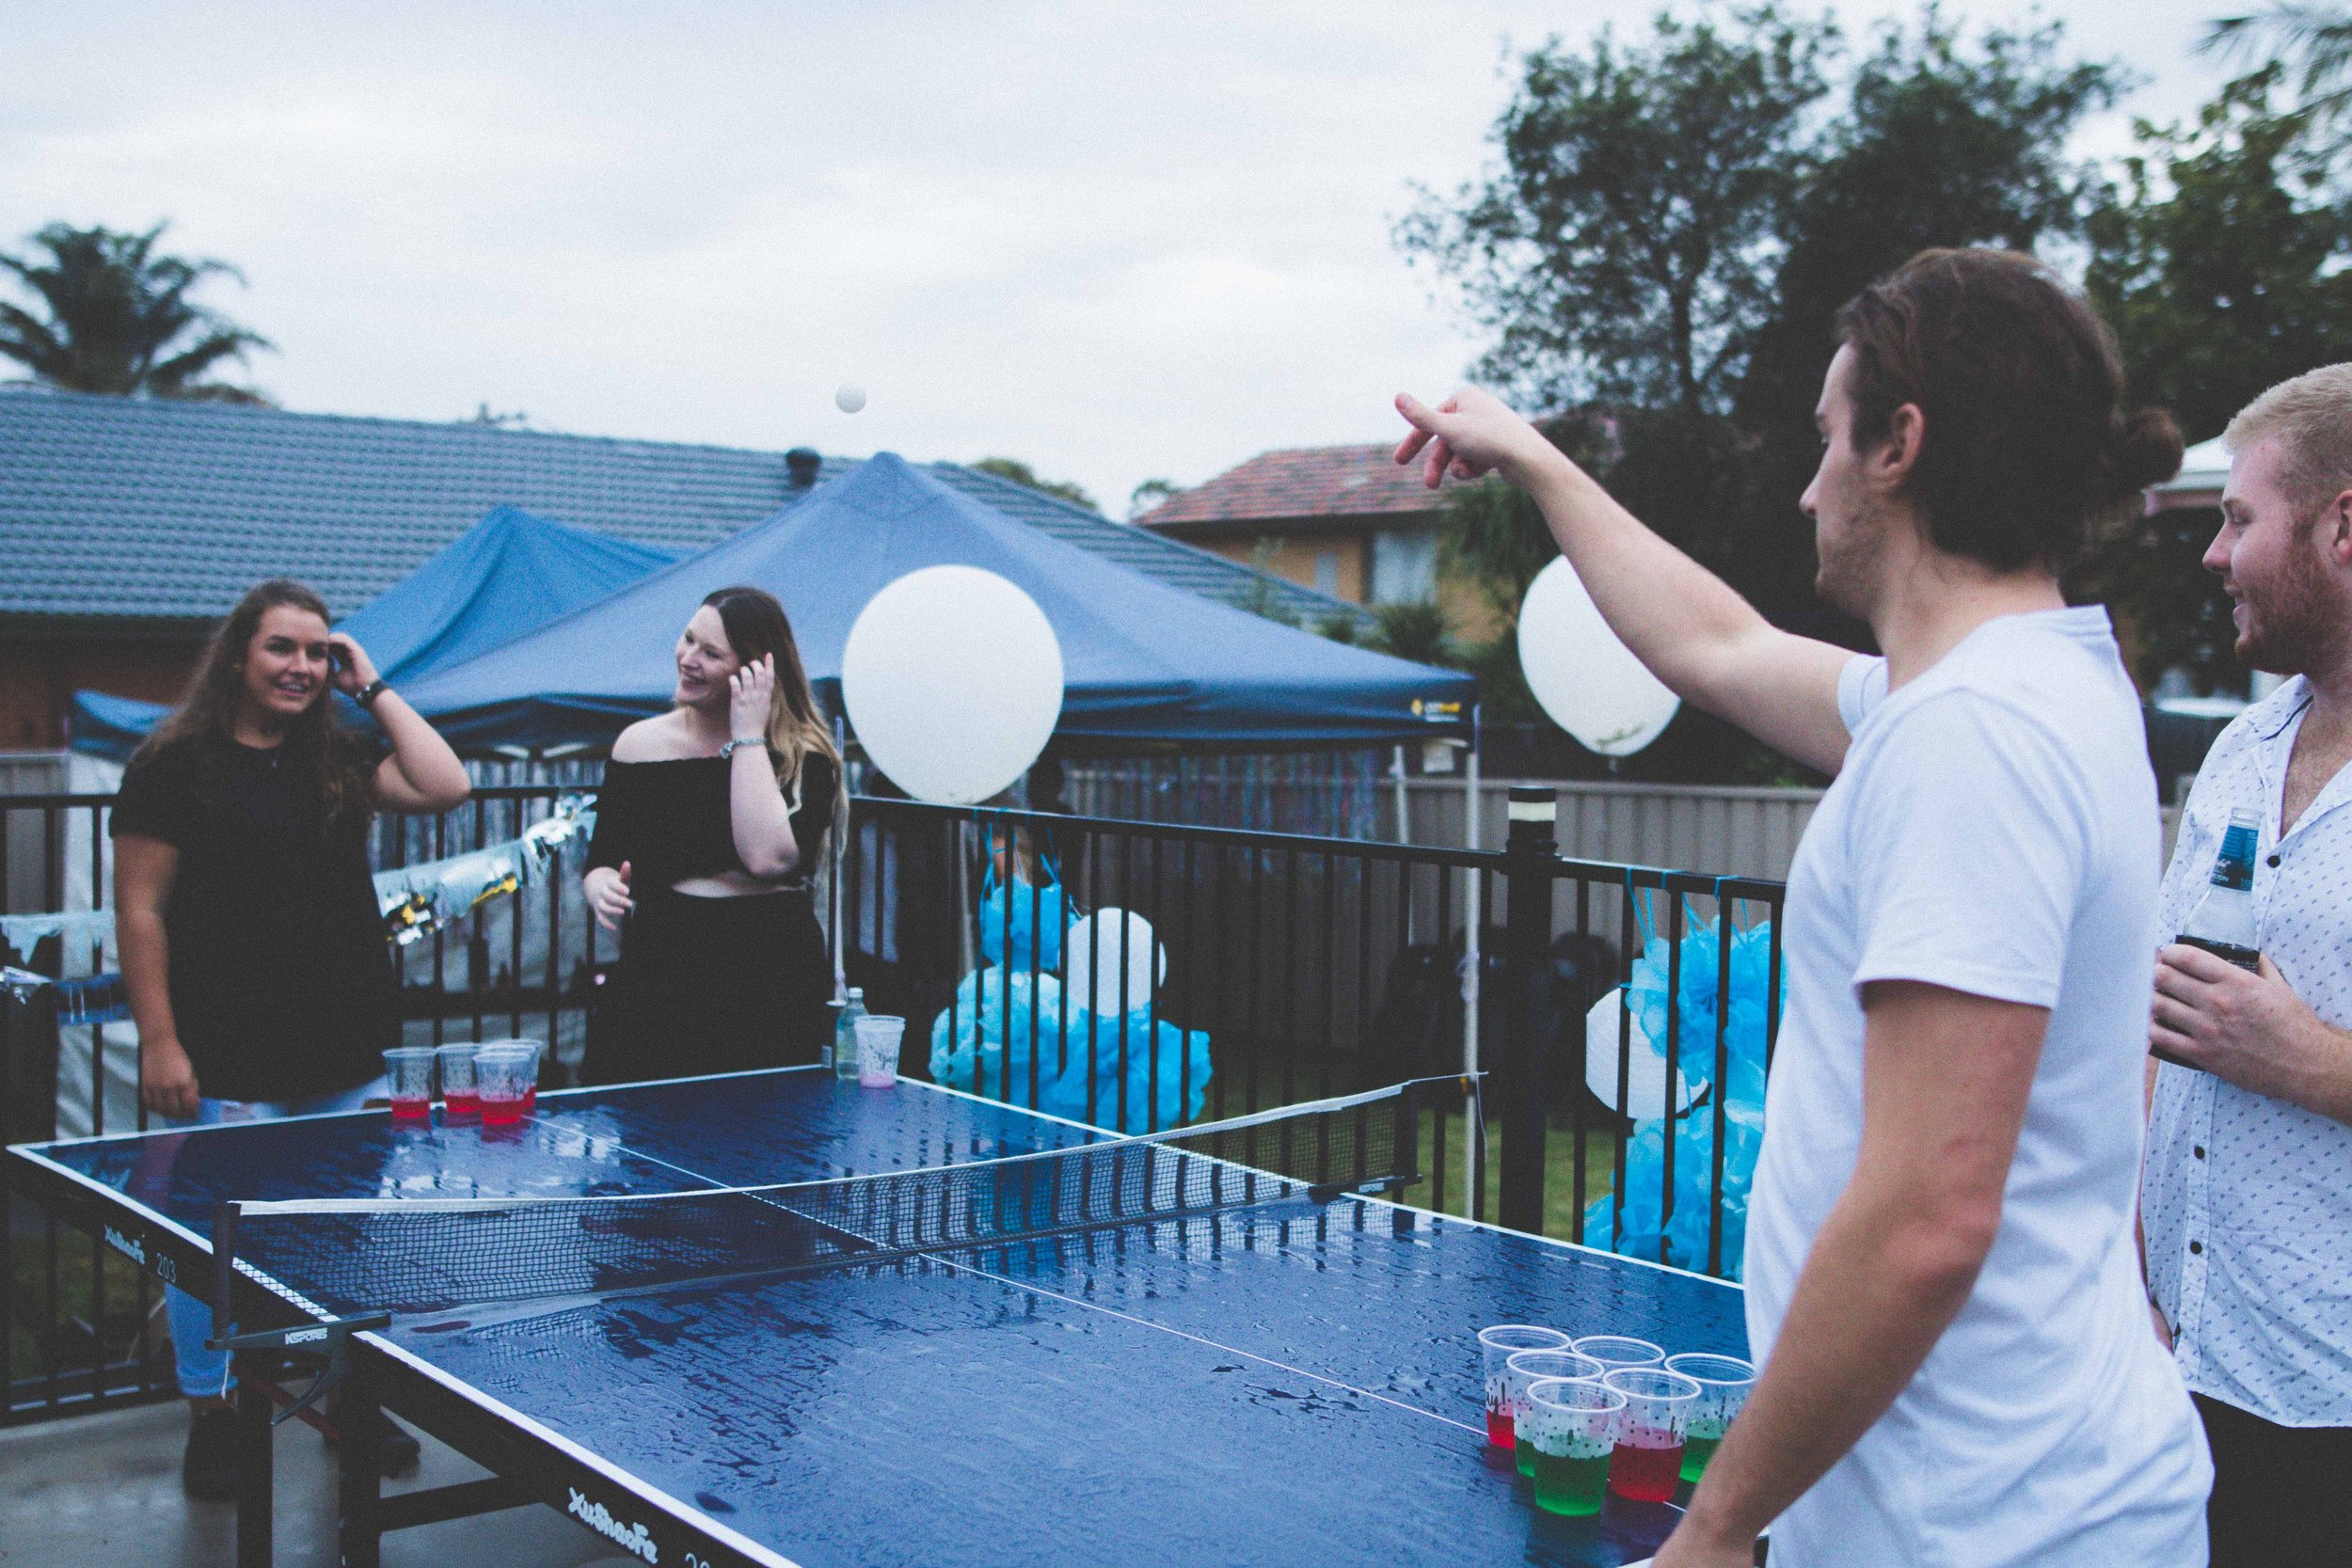 Beerpong - The Youth Academy